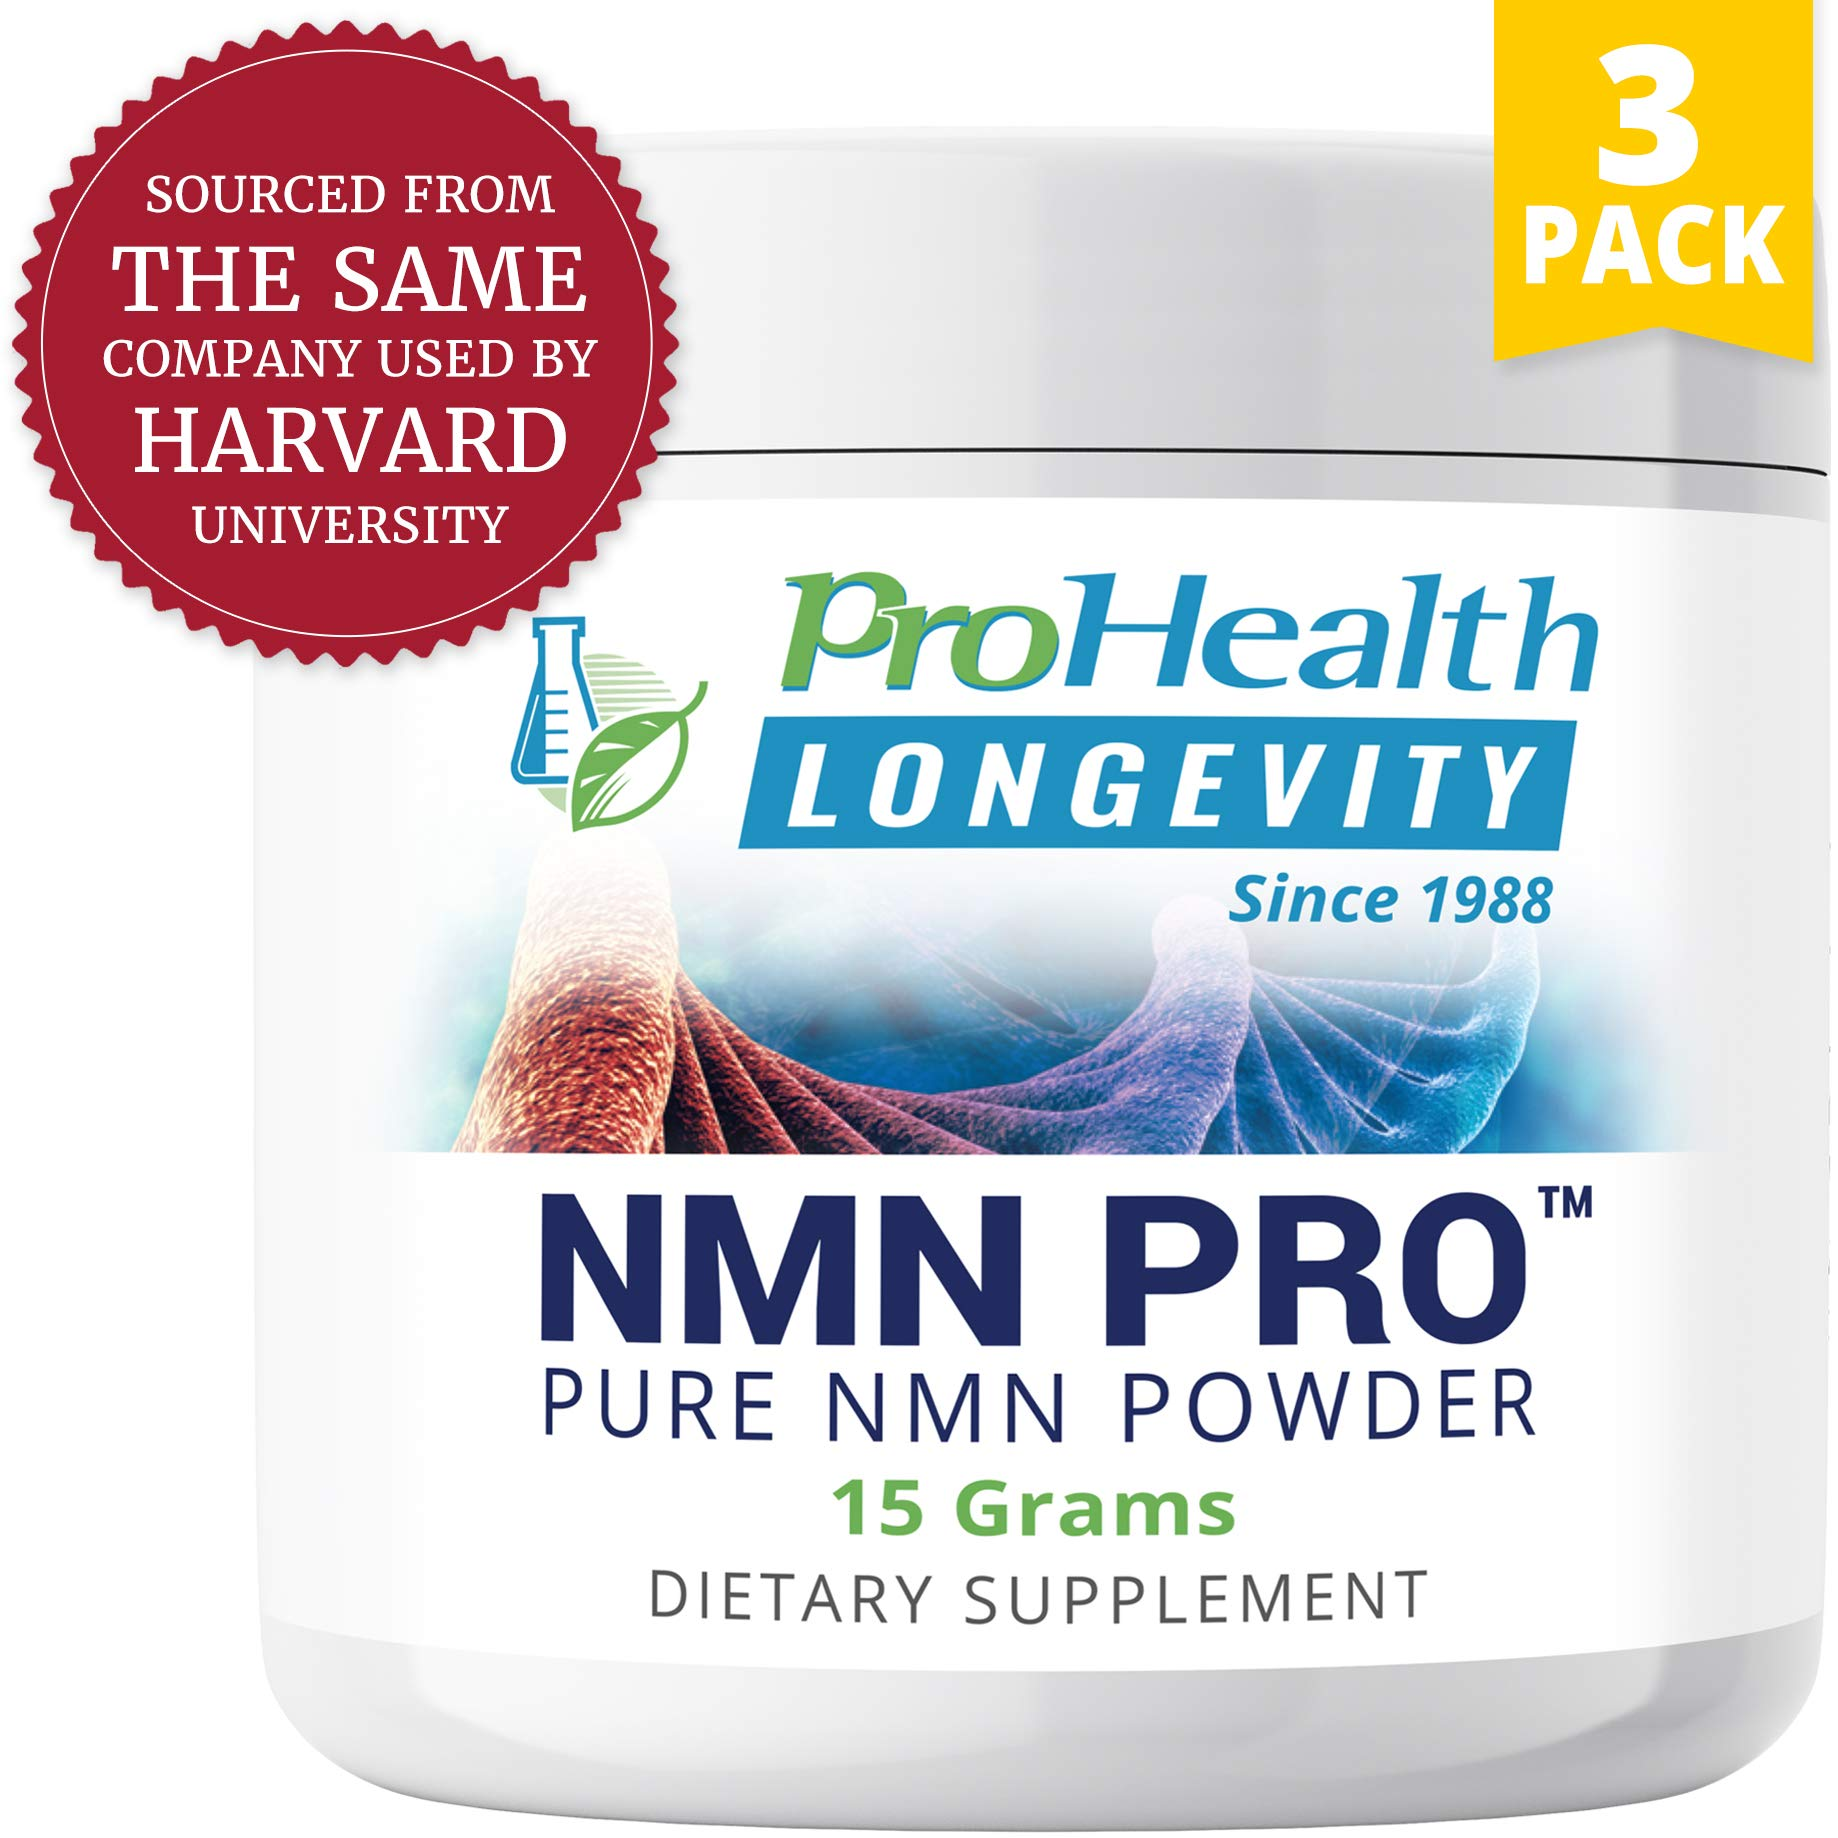 ProHealth NMN Powder 3-Pack (15 Grams per jar) Nicotinamide Mononucleotide | NAD+ Precursor | Supports Anti-Aging, Longevity and Energy | Non-GMO by ProHealth